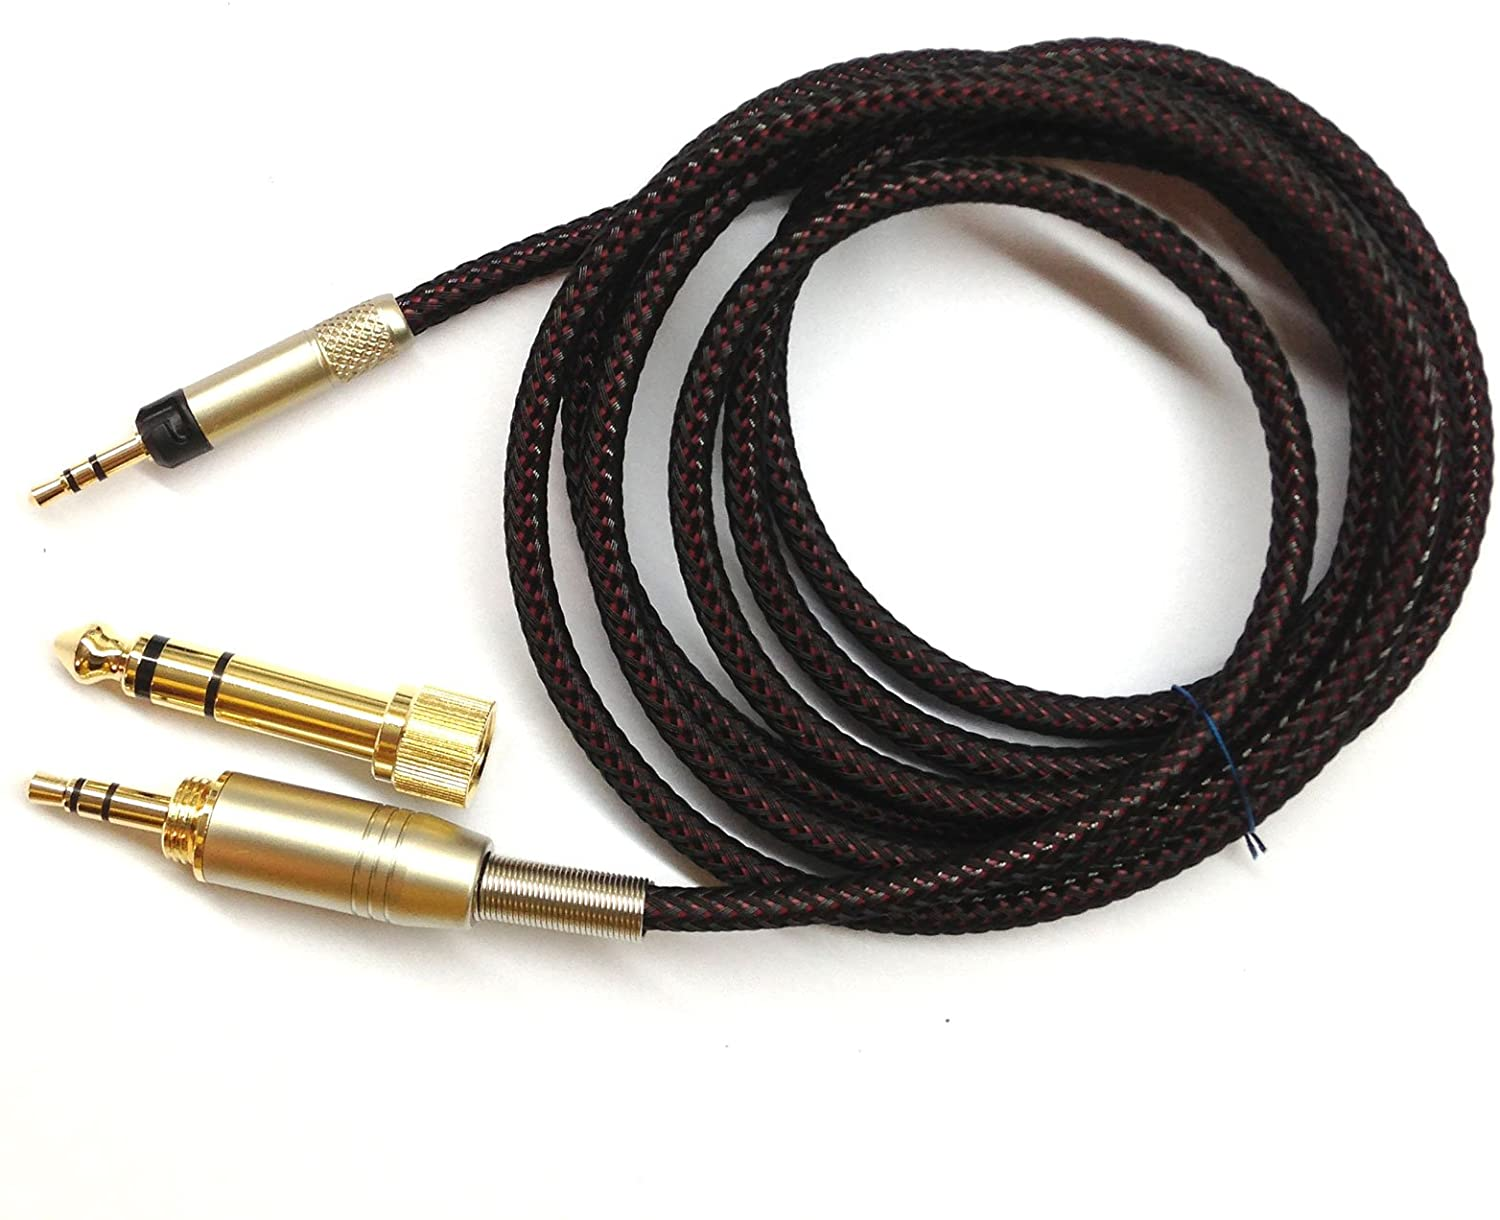 NewFantasia Replacement Upgrade Cable for Audio Technica ATH-M50x, ATH-M40x, ATH-M70x Headphones 1.2meters/4feet